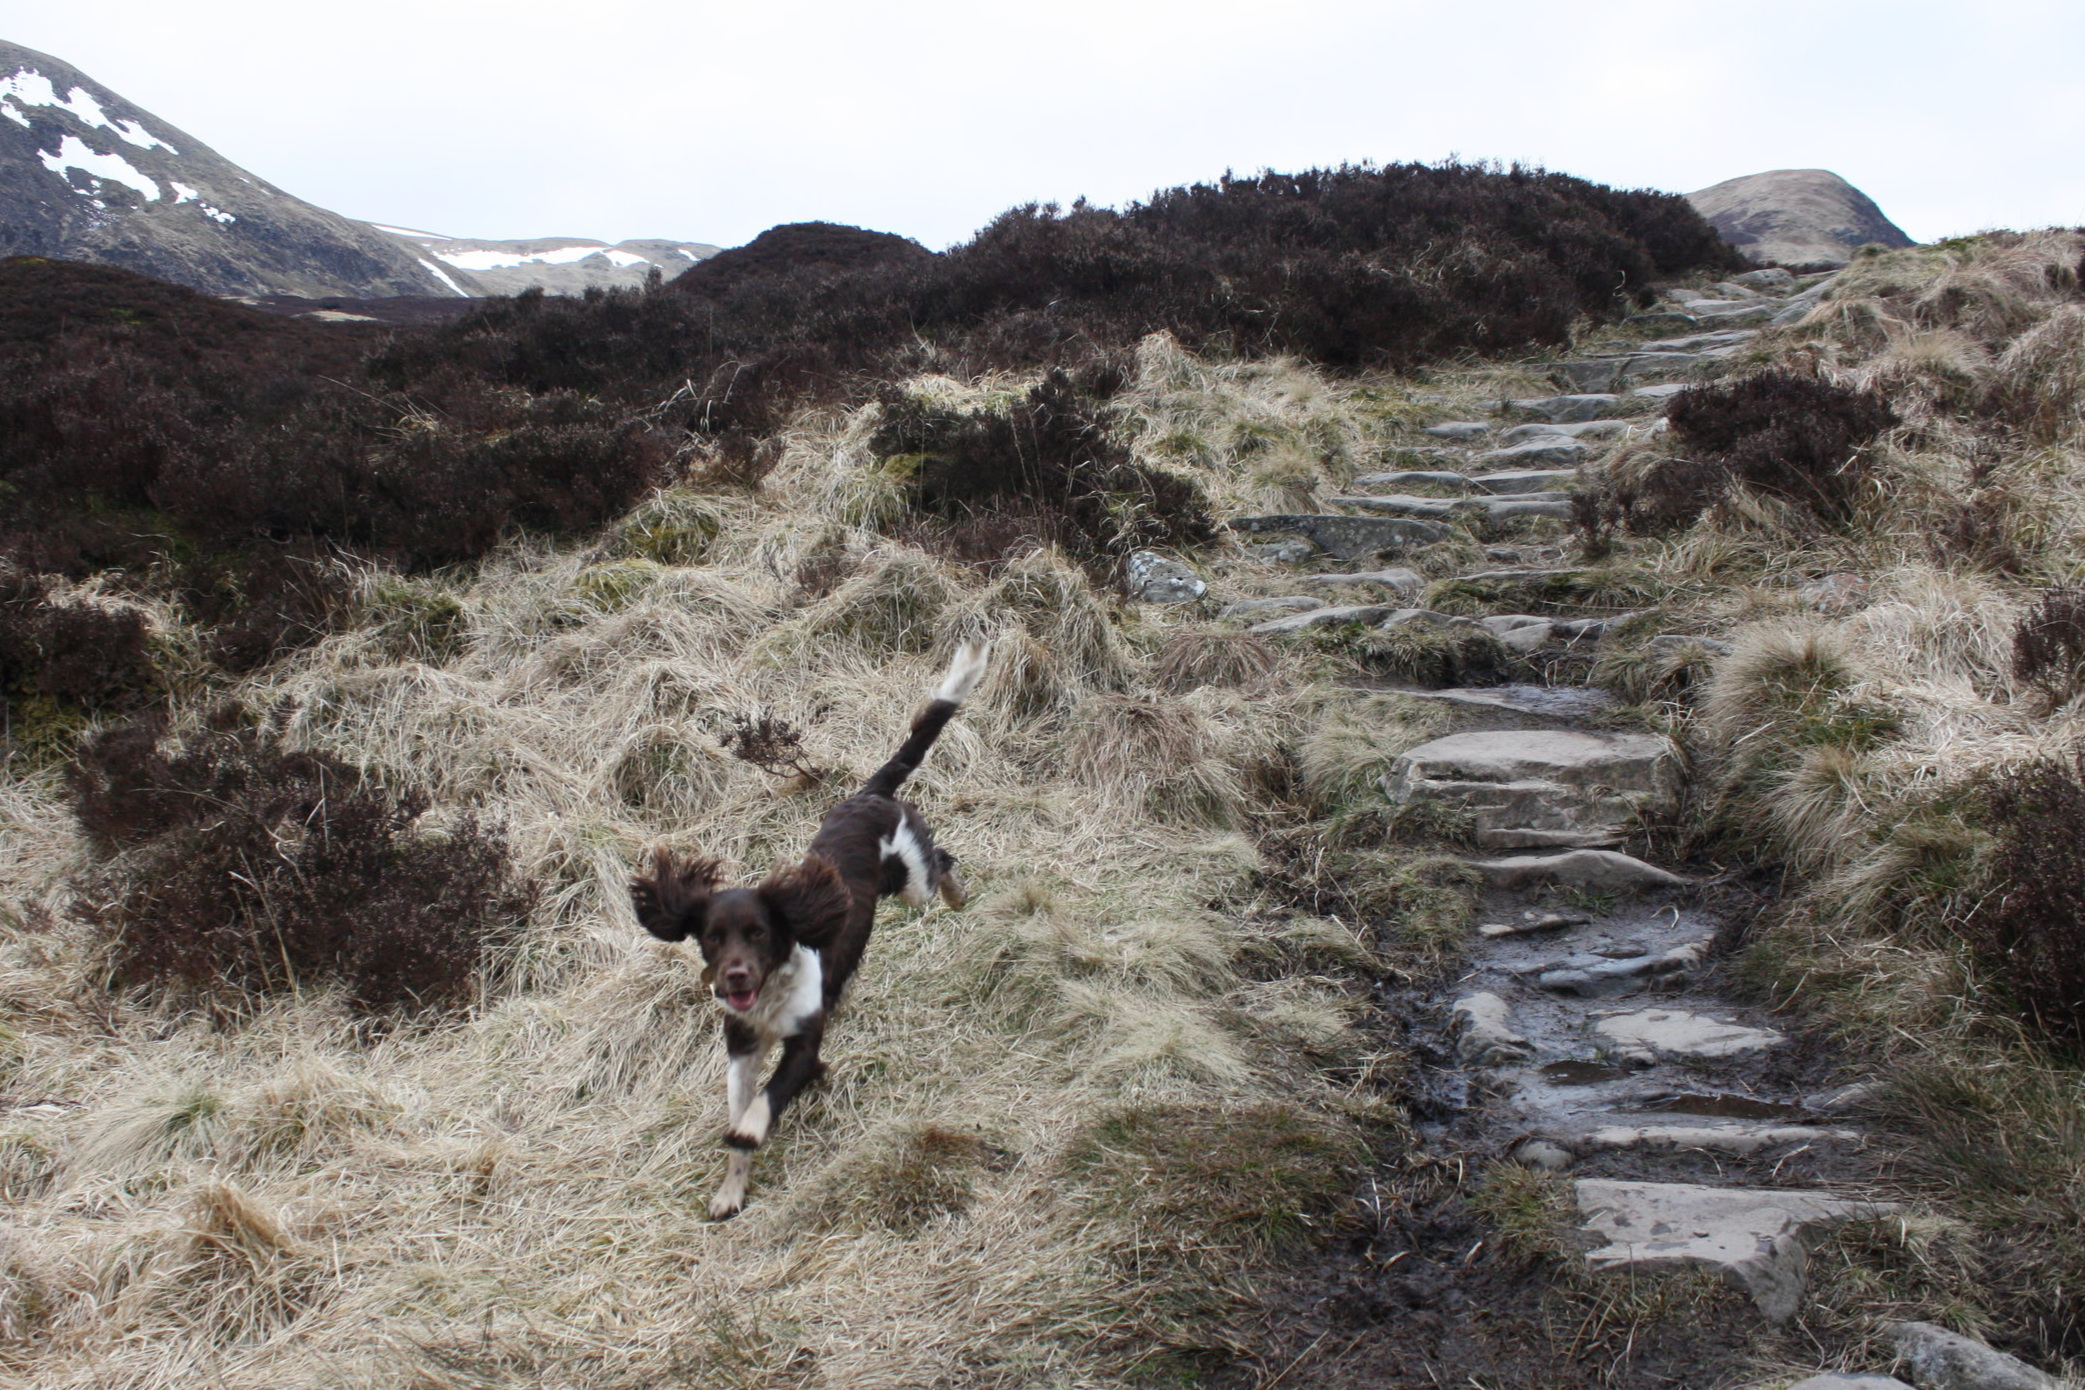 Dog friendly - Blackaddie is one of the most dog friendly hotels in Dumfries & Galloway. With such stunning walking routes on our doorstep, we couldn't expect you to leave your four legged friends at home!